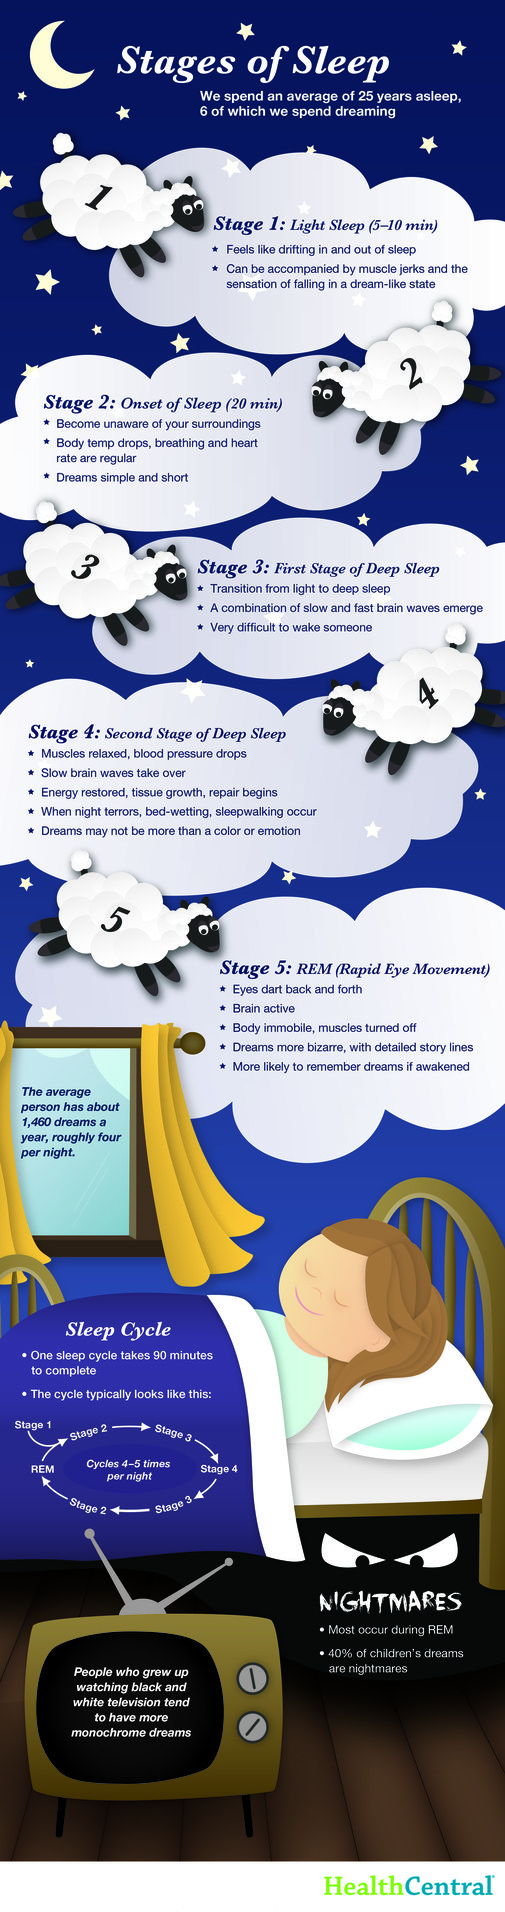 Know the Stages of Sleep